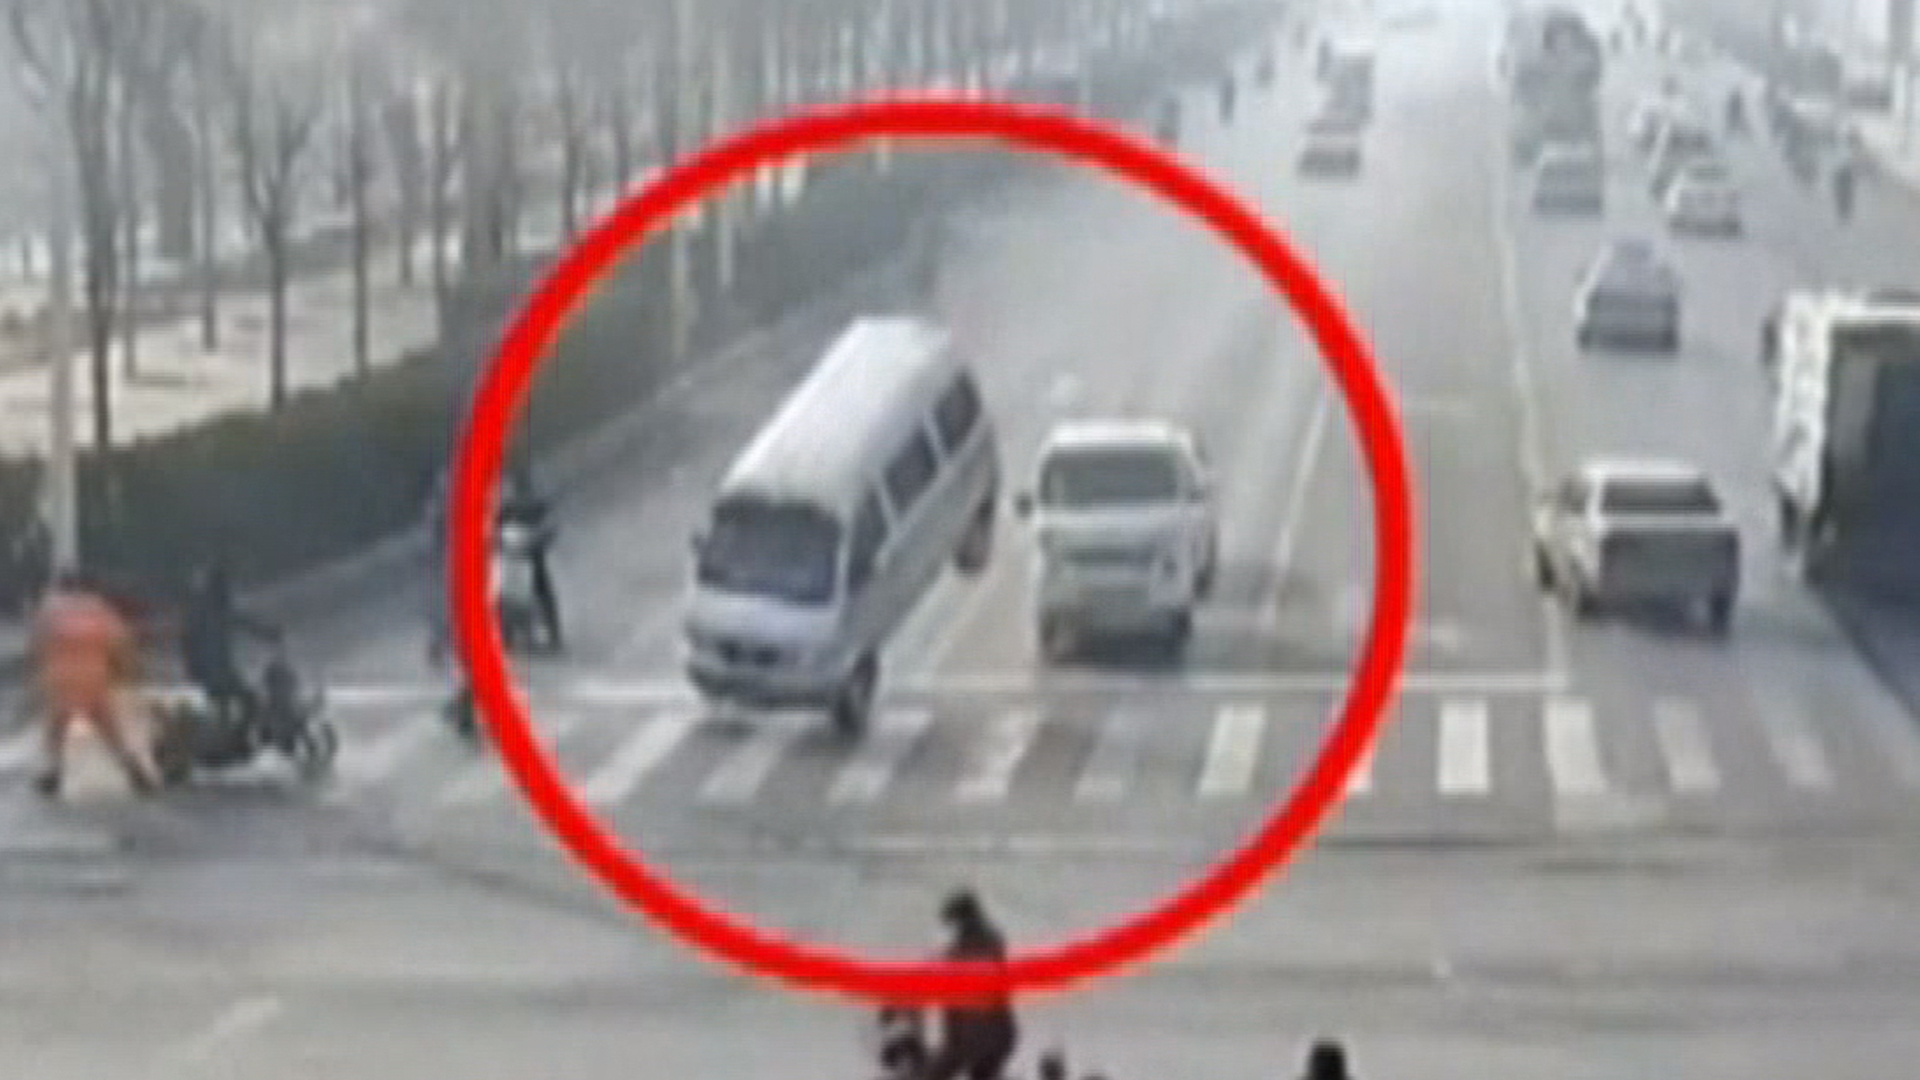 'Levitating' car accident in China